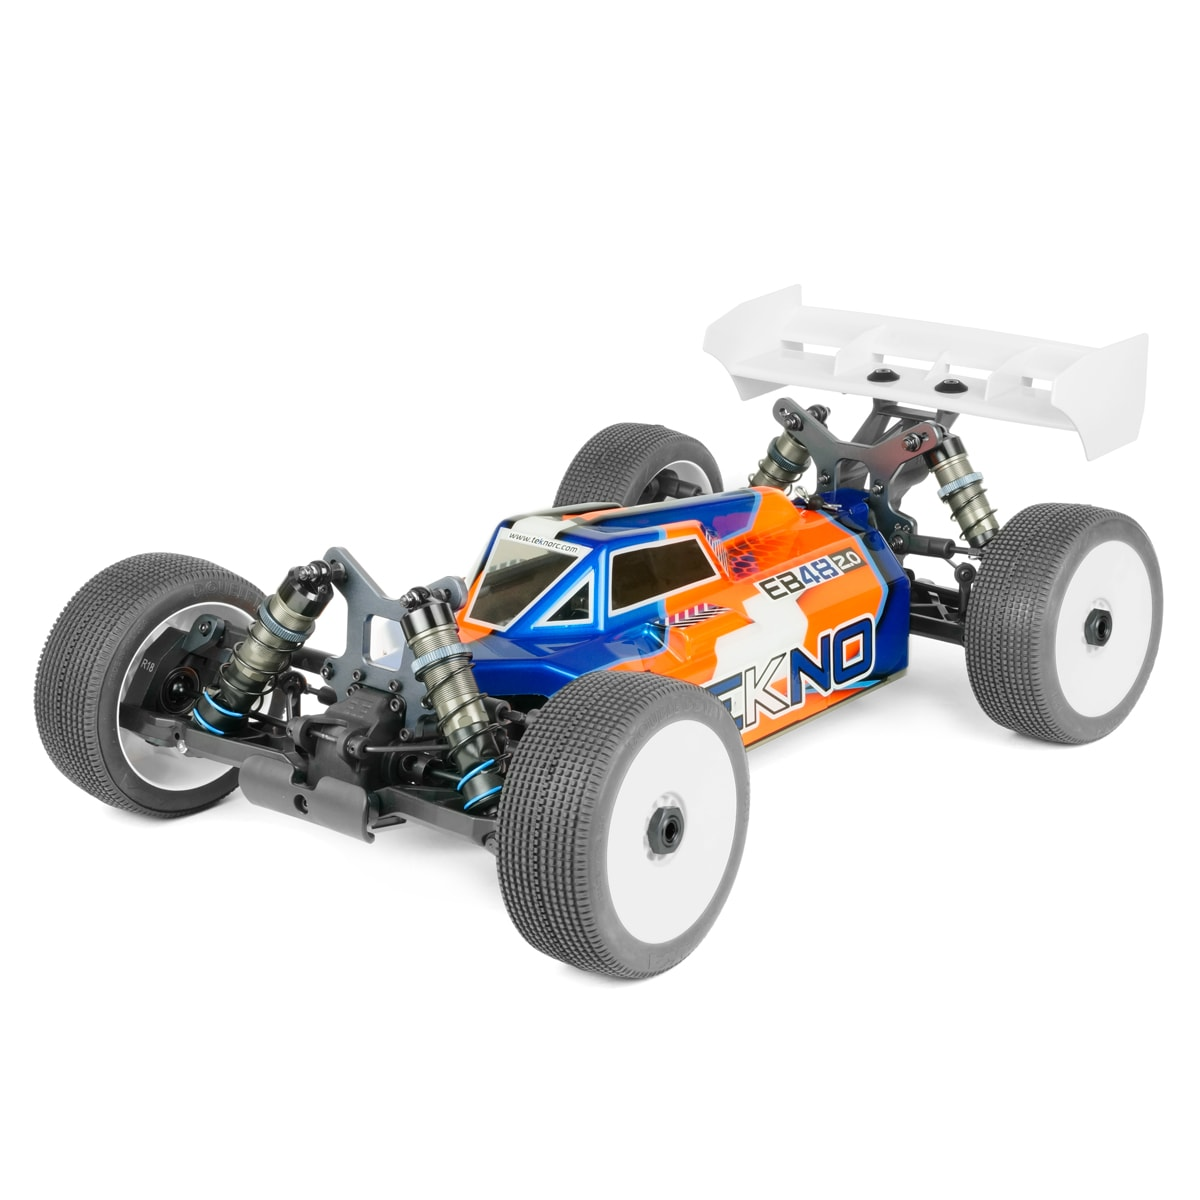 Tekno RC EB48 2.0 1/8-scale Competition Buggy Kit